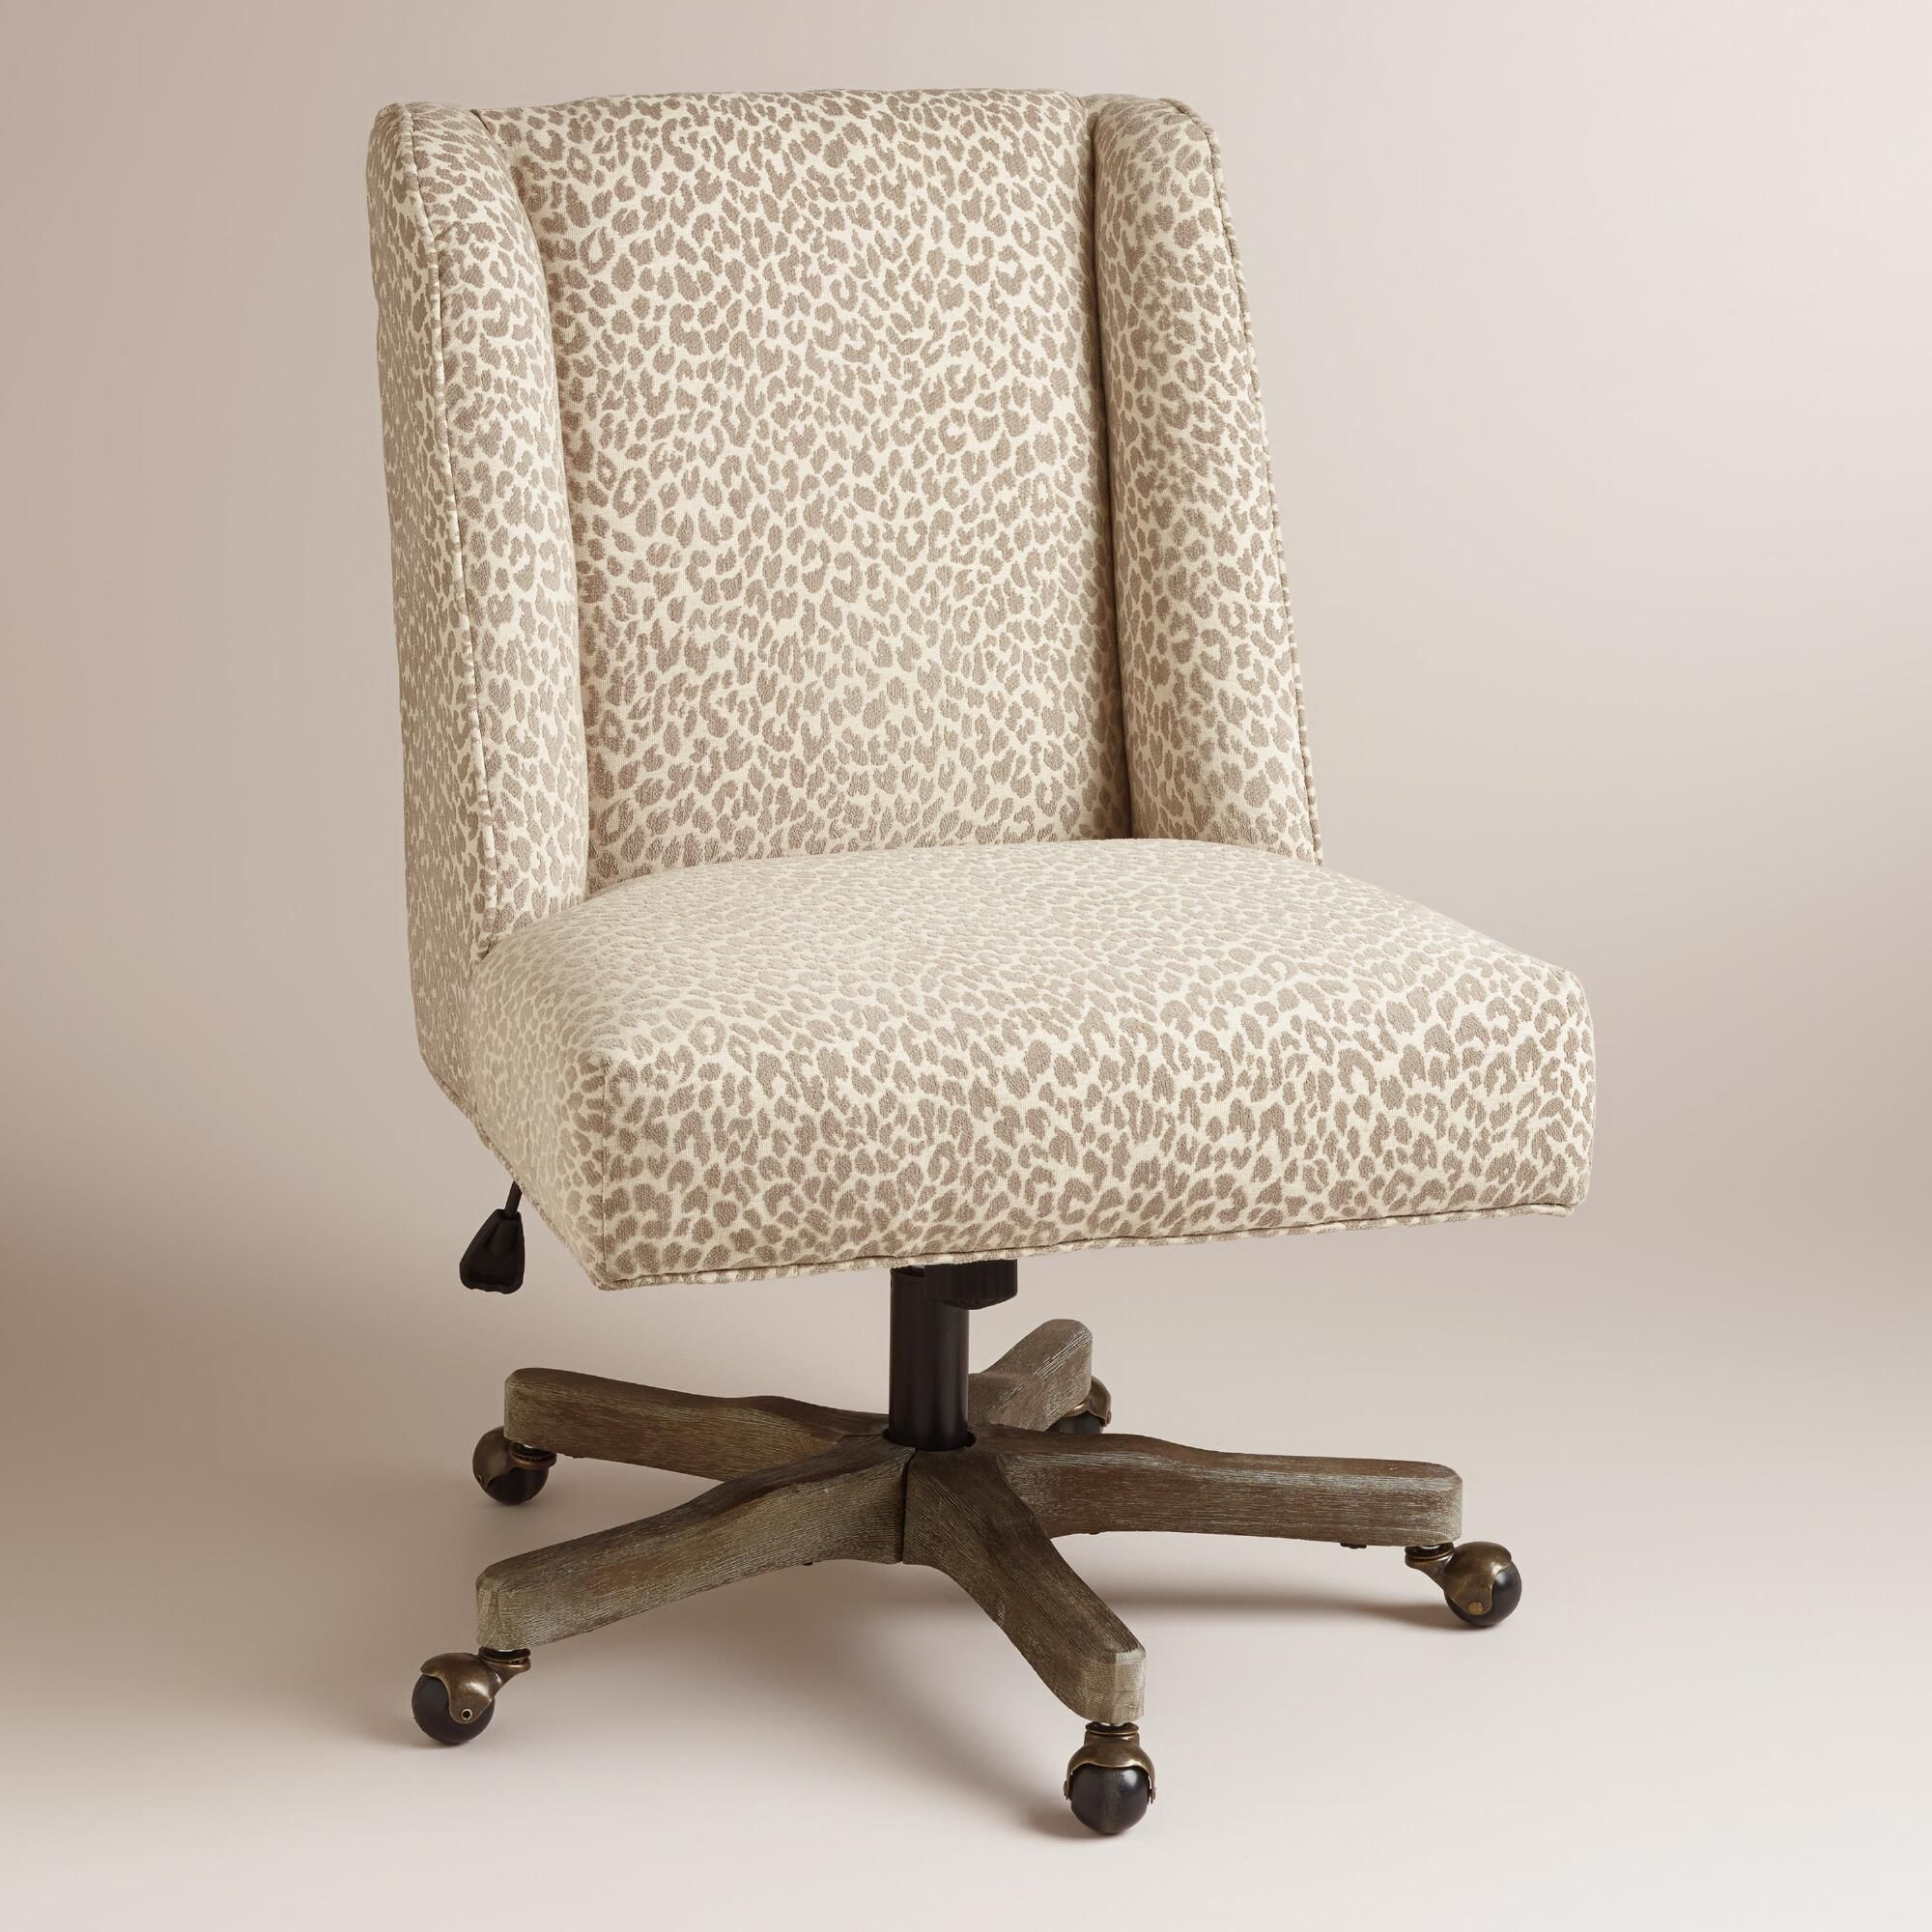 revolving chair features kitchen table chairs with rollers an updated wingback profile and natural hued leopard